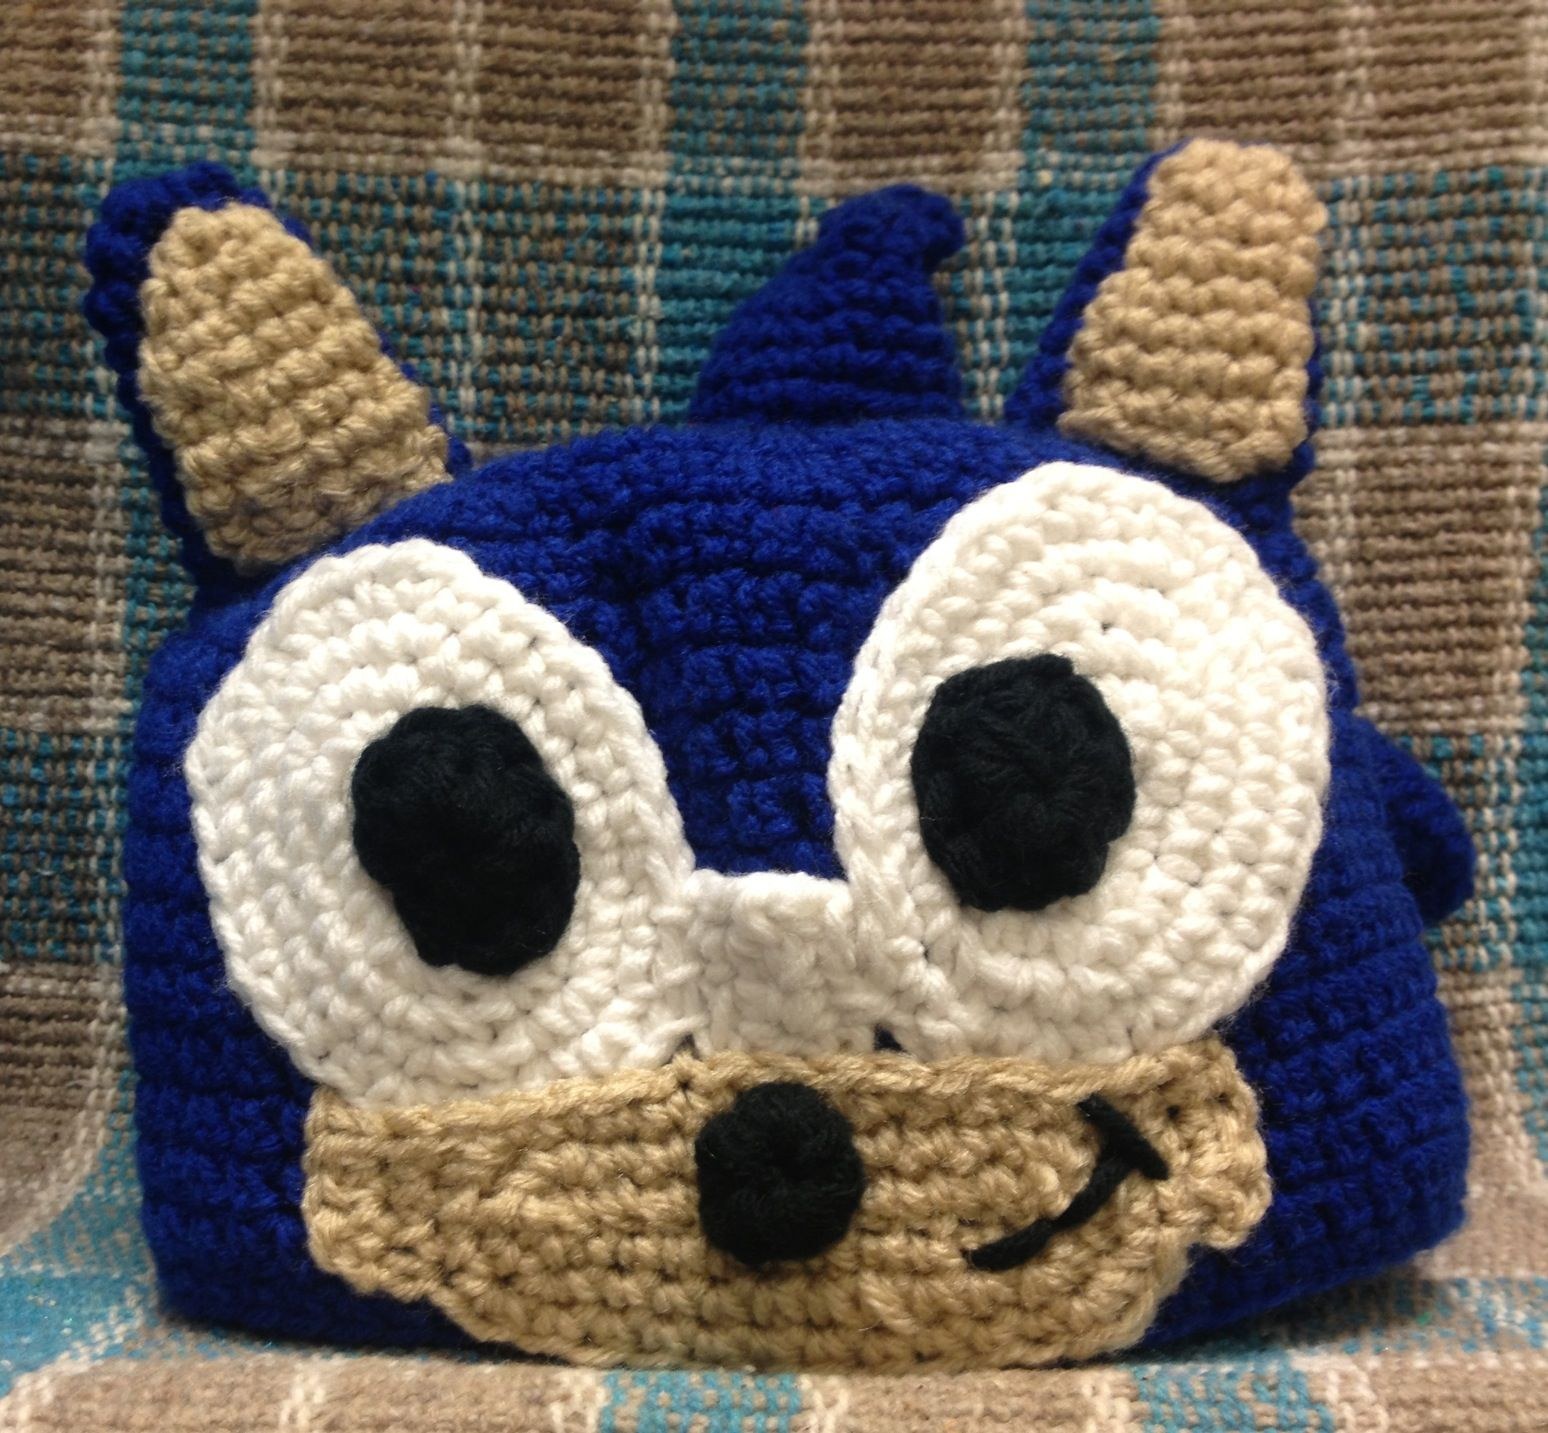 Sonic The Hedgehog Beanie | Will | Pinterest | Hedgehogs and Crochet